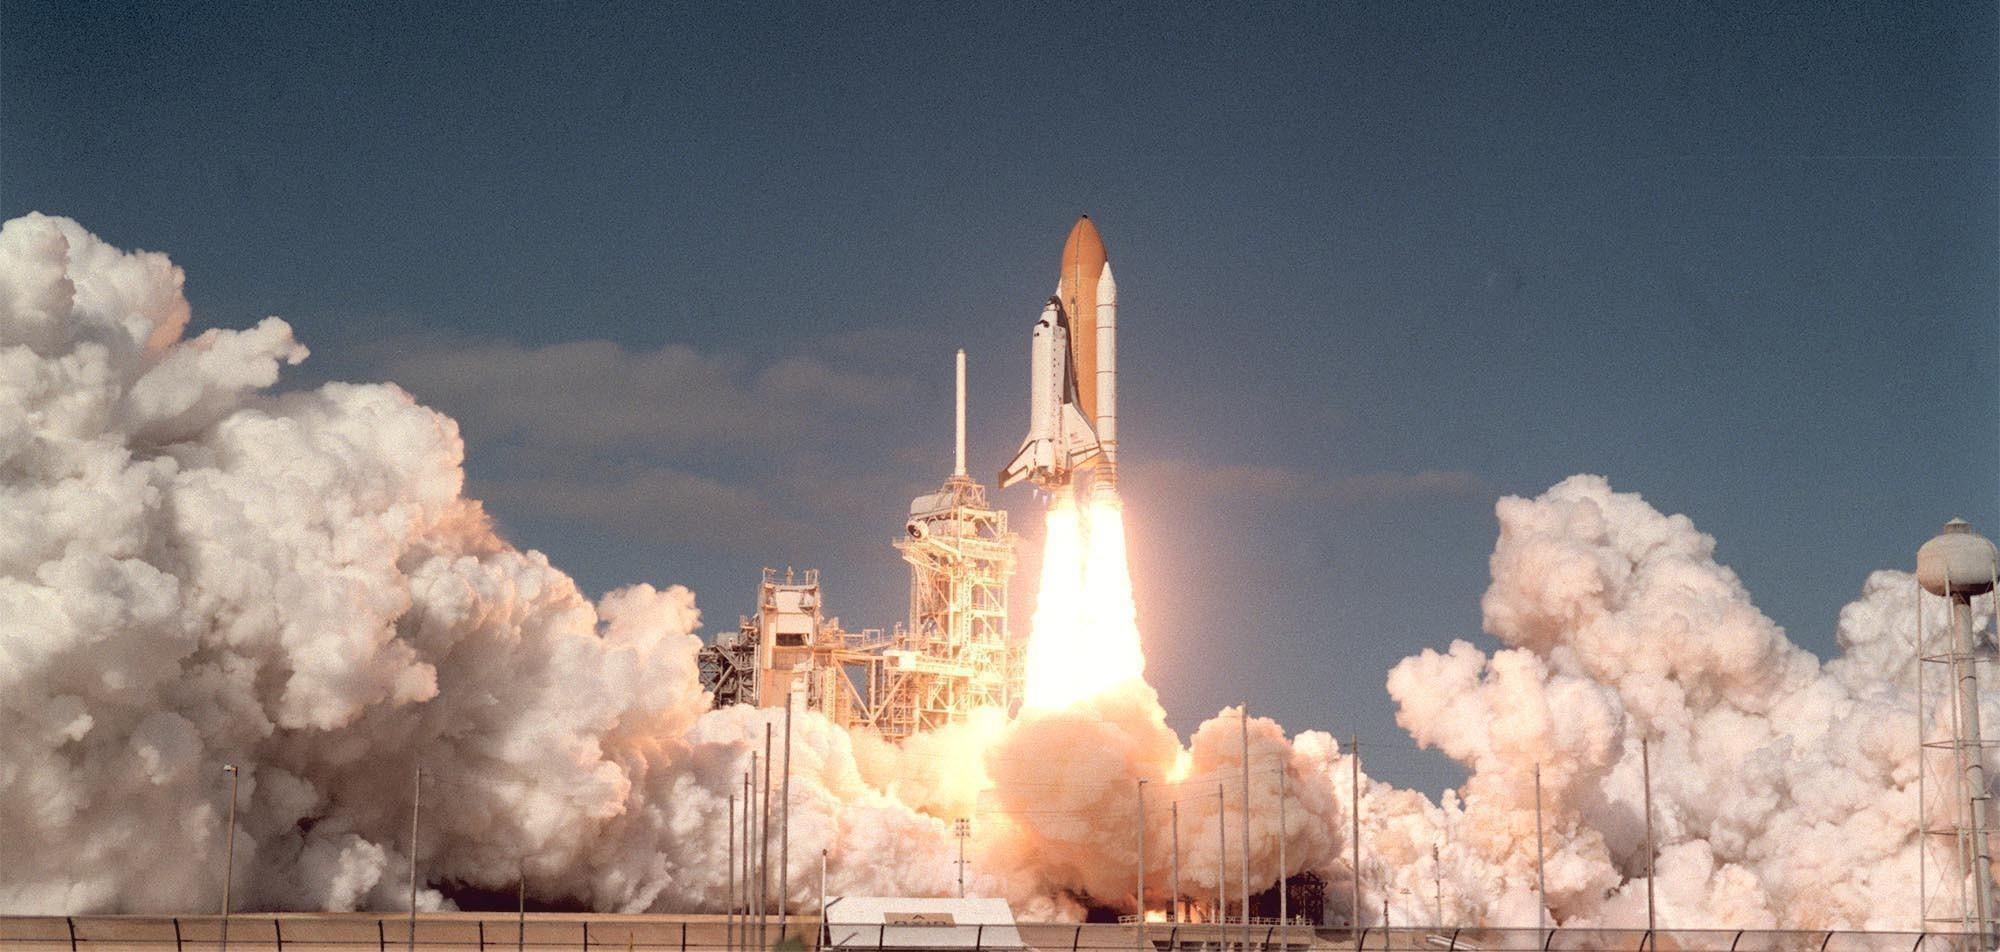 space shuttle columbia disaster start date - photo #6